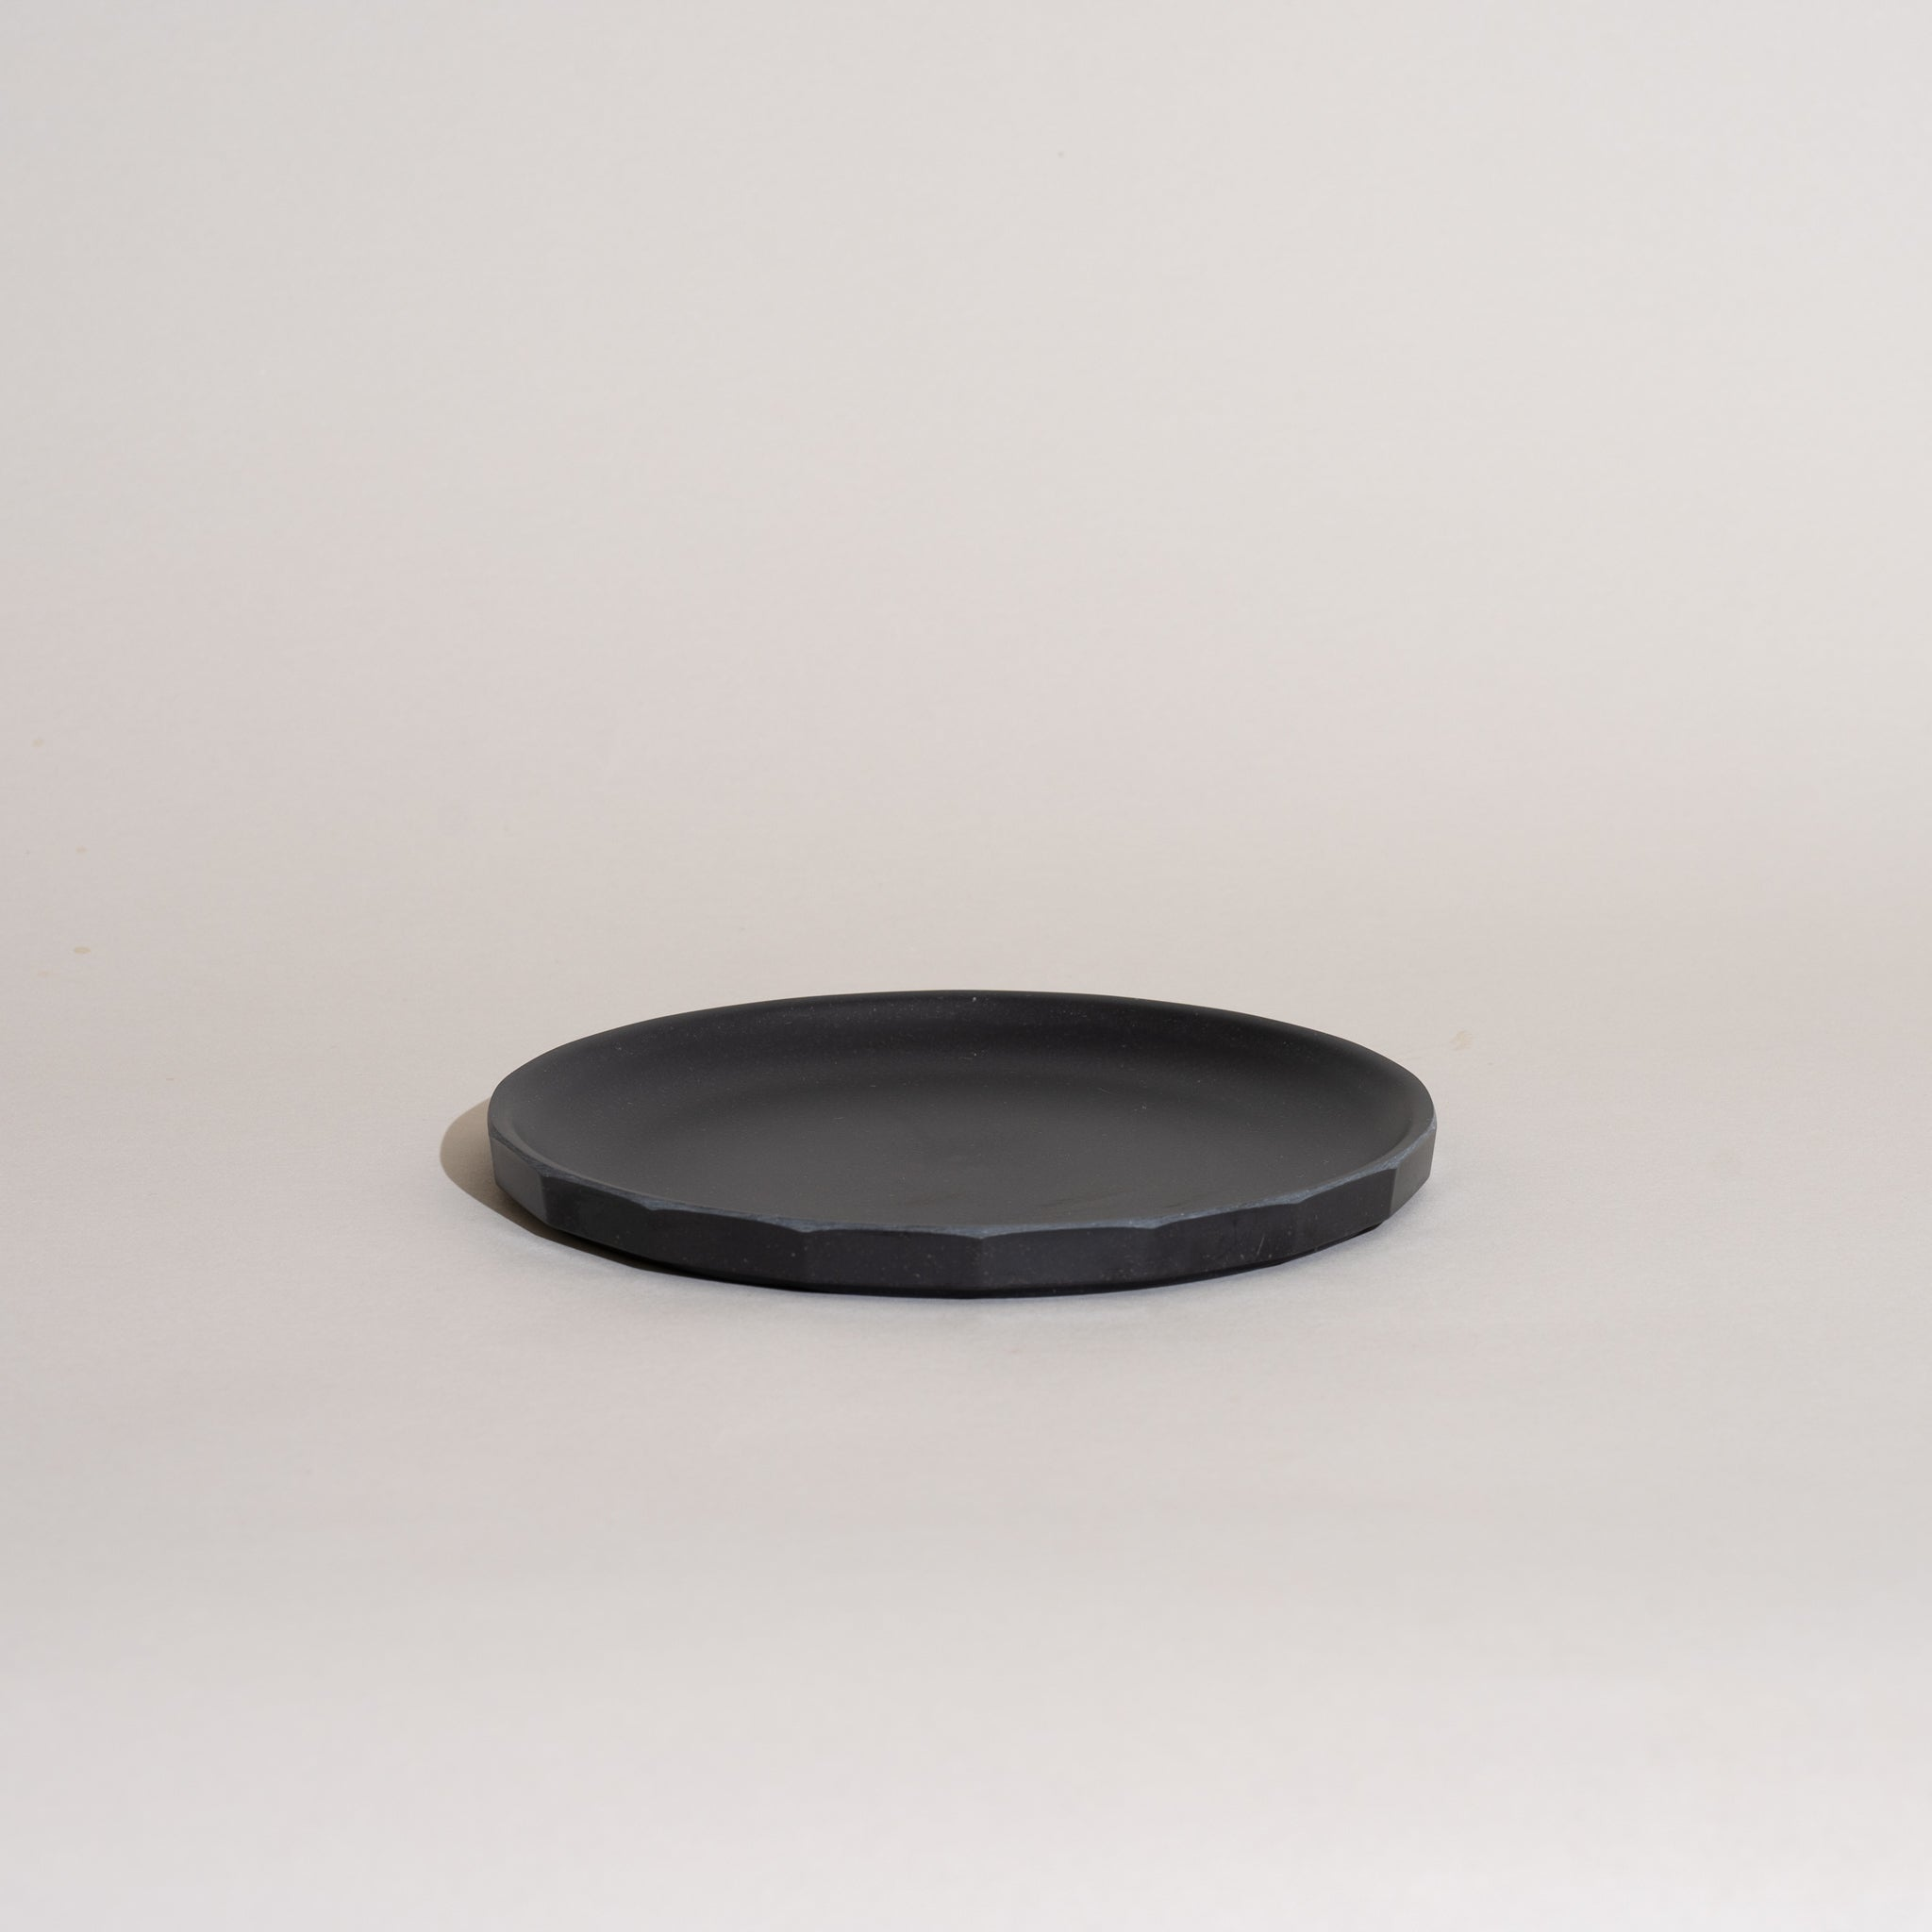 Alfresco Plate (190mm)